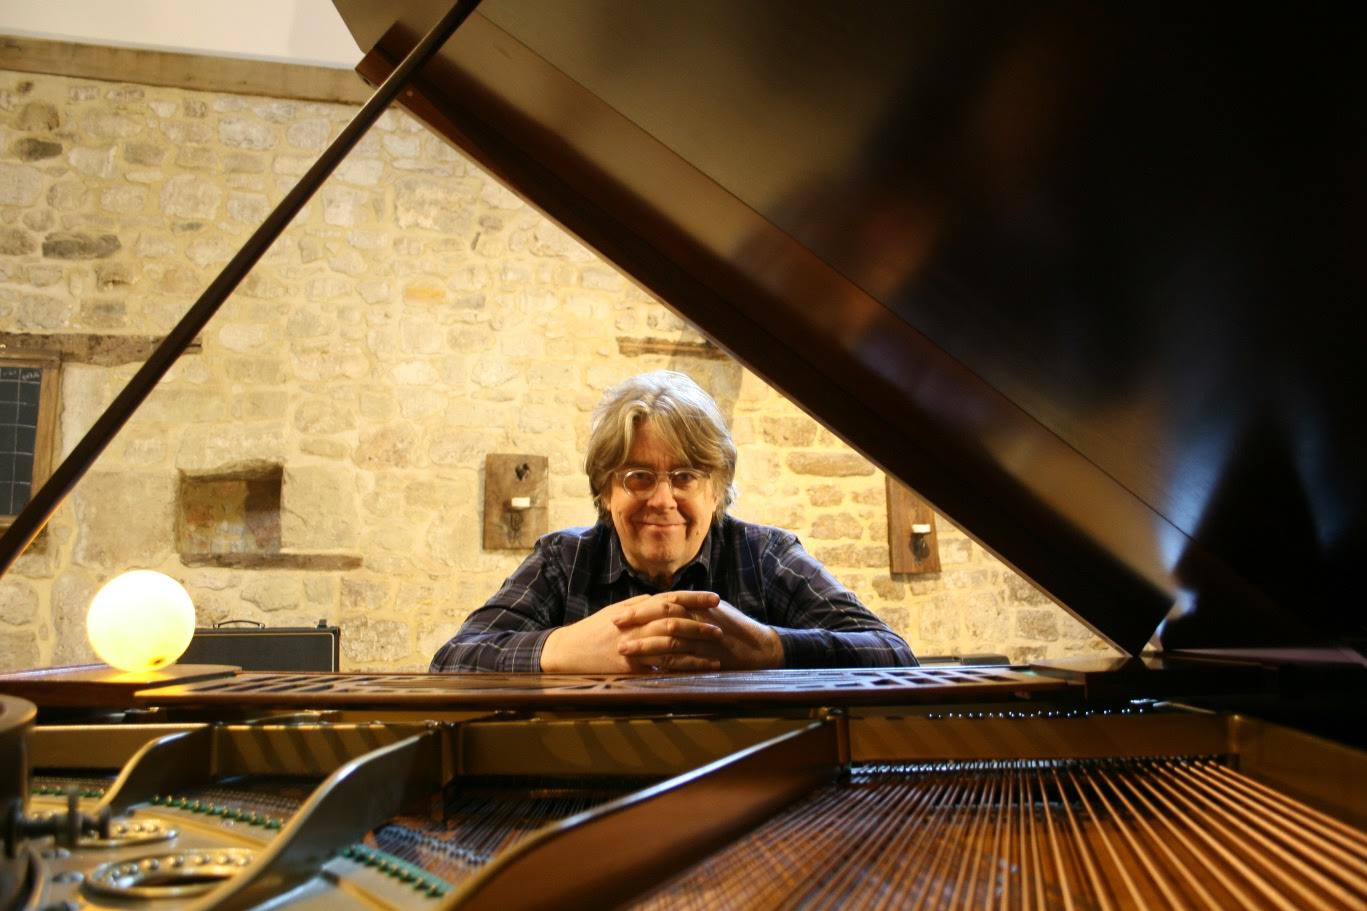 man at a piano